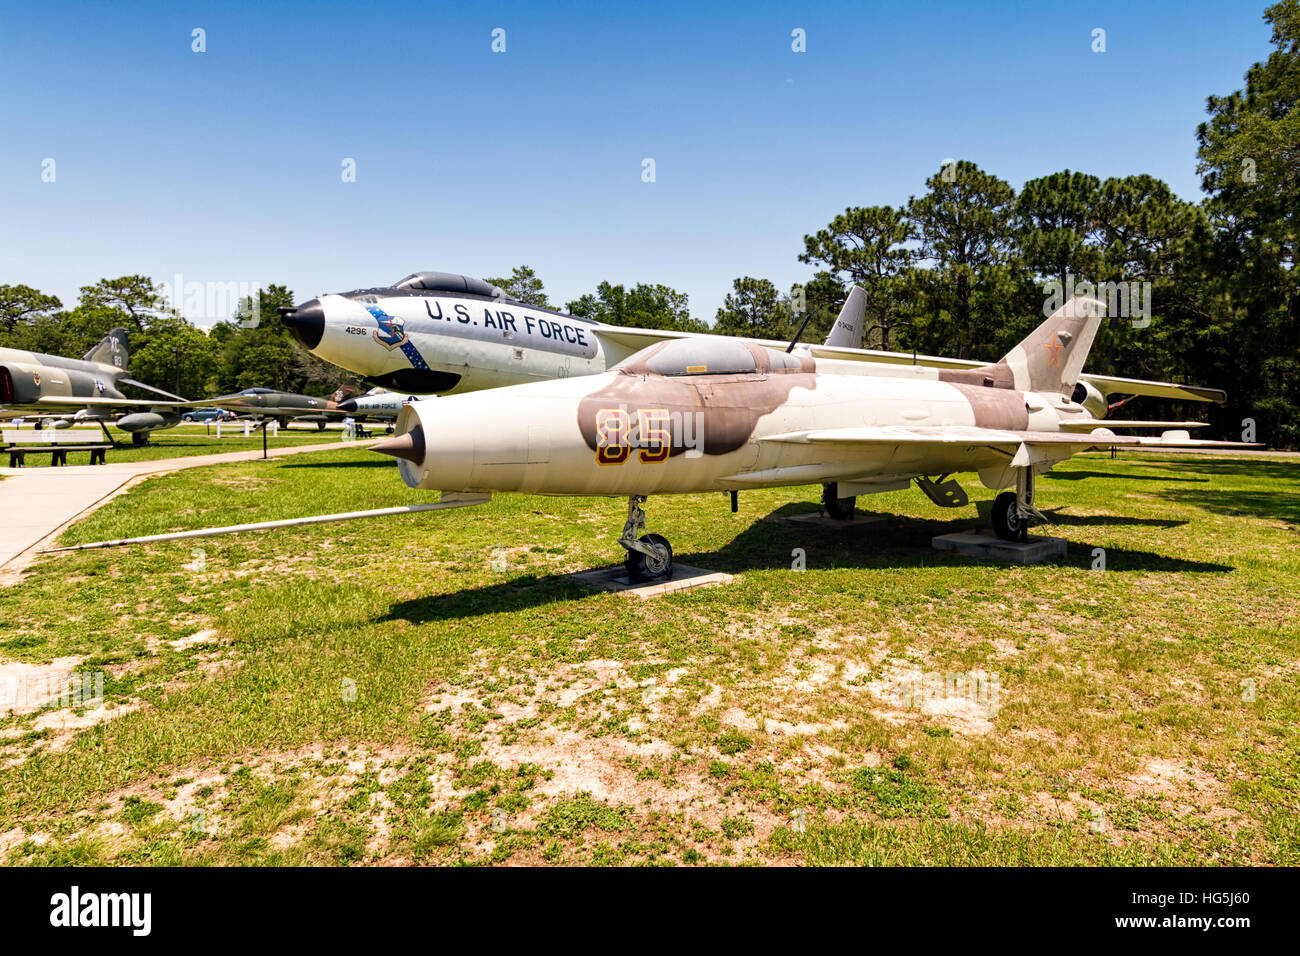 Mikoyan-Gurevich MiG-21F Fishbed C/E, '014', displayed in typical Russian Air Force markings. This is most likely Stock Photo